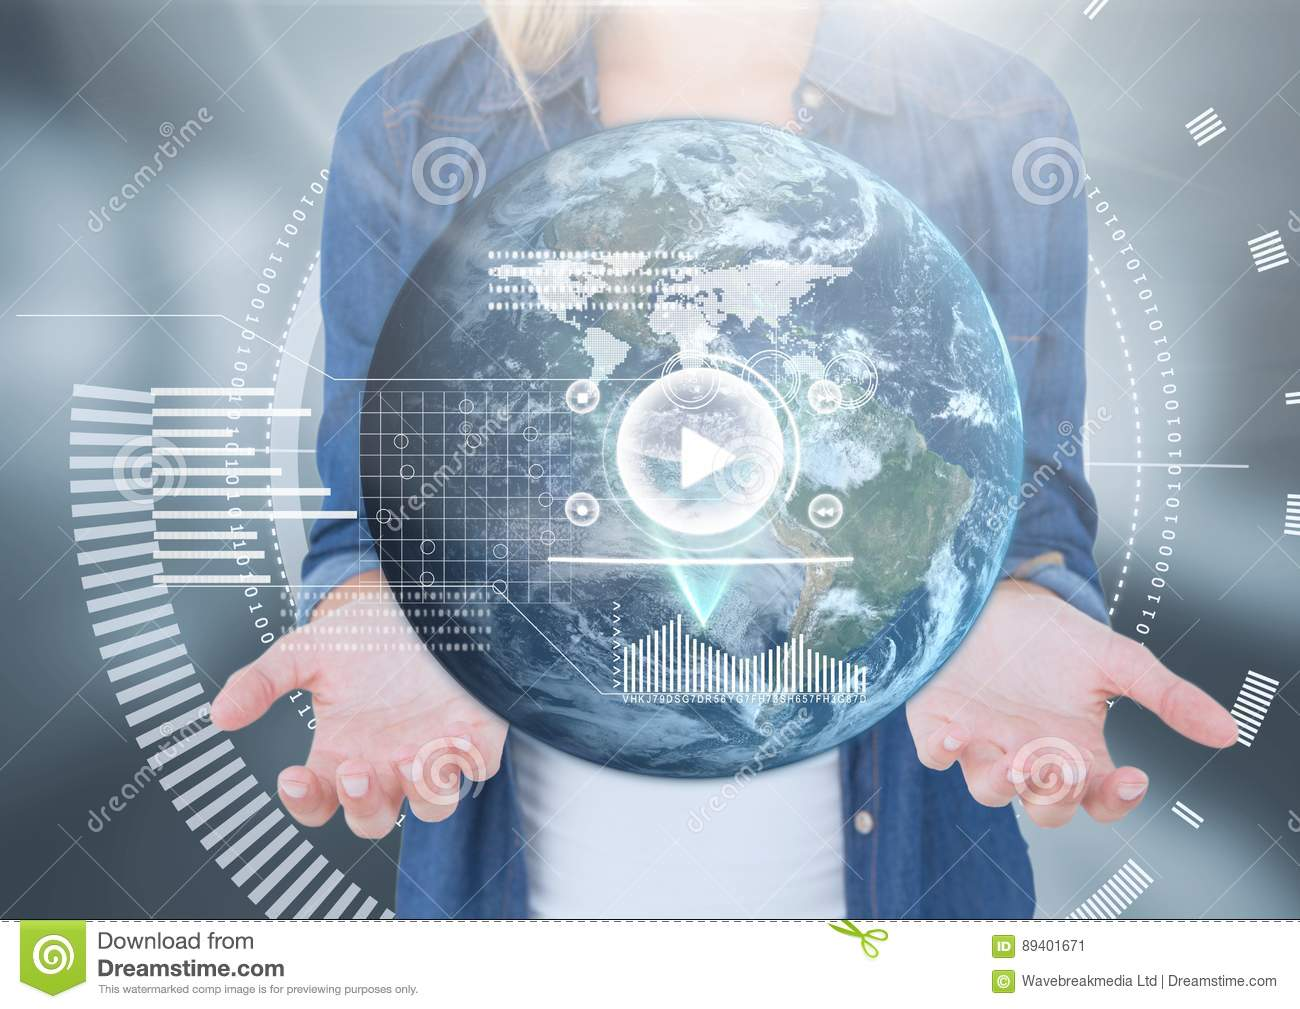 Womans open palm hands holding world earth globe interface technology